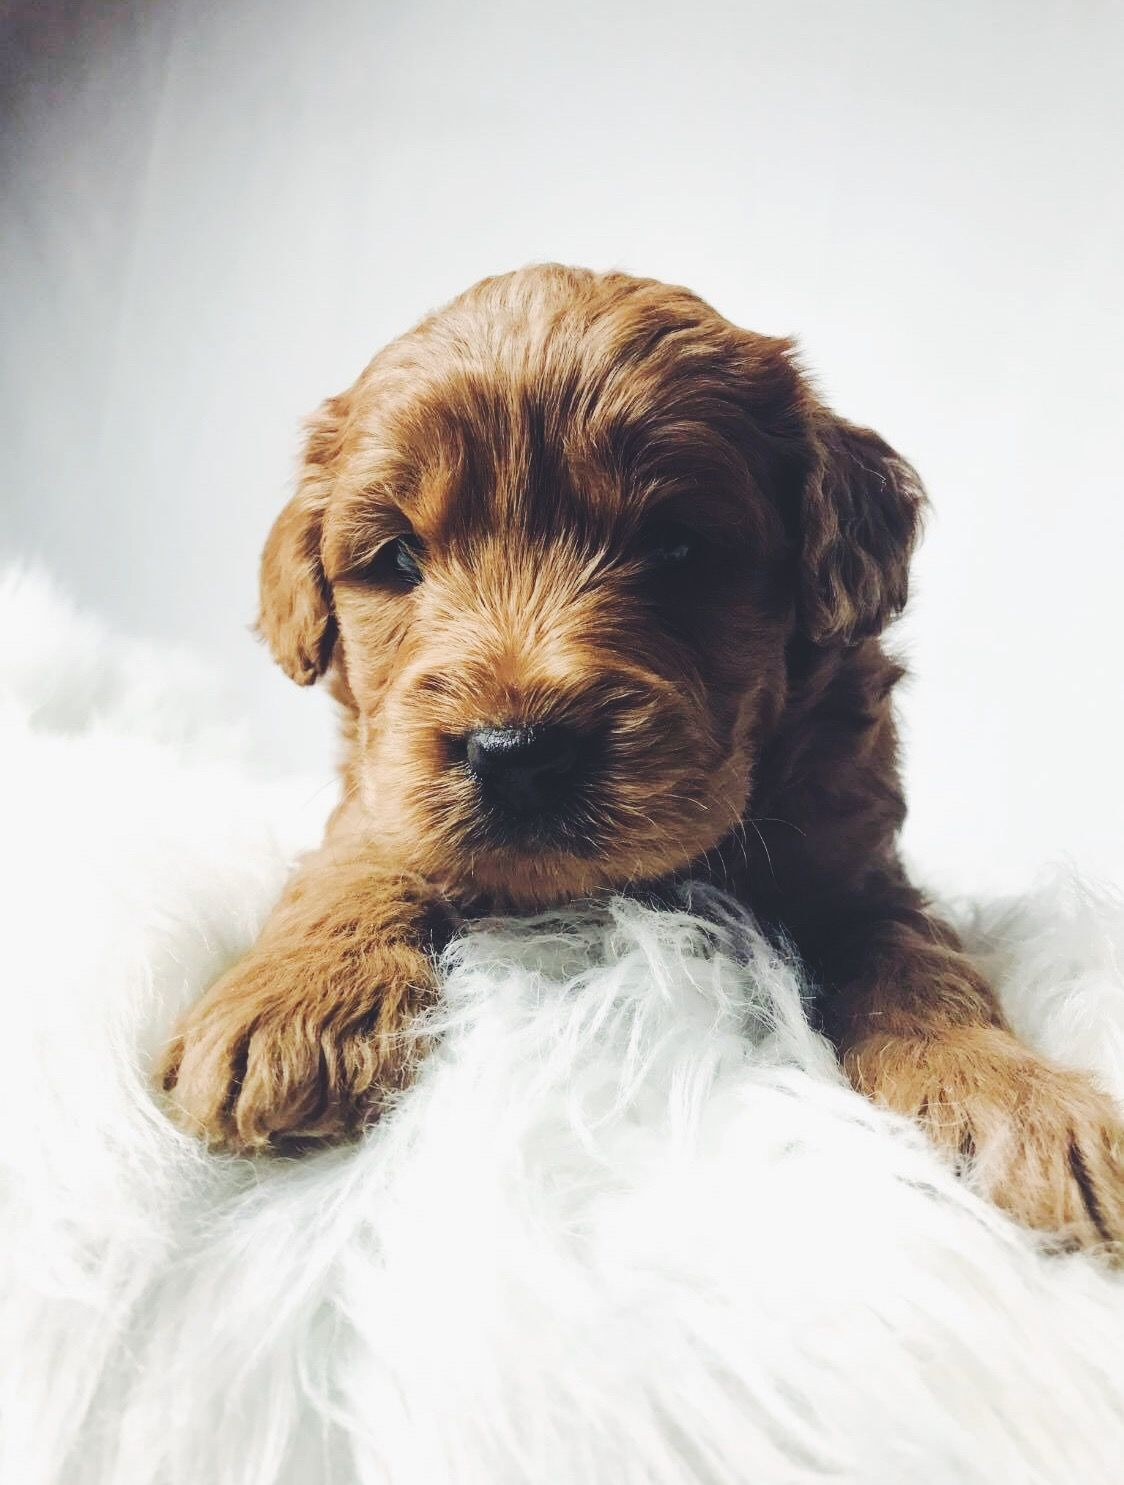 Pin By Sophie Price On Lola In 2020 Golden Retriever Dogs Animals